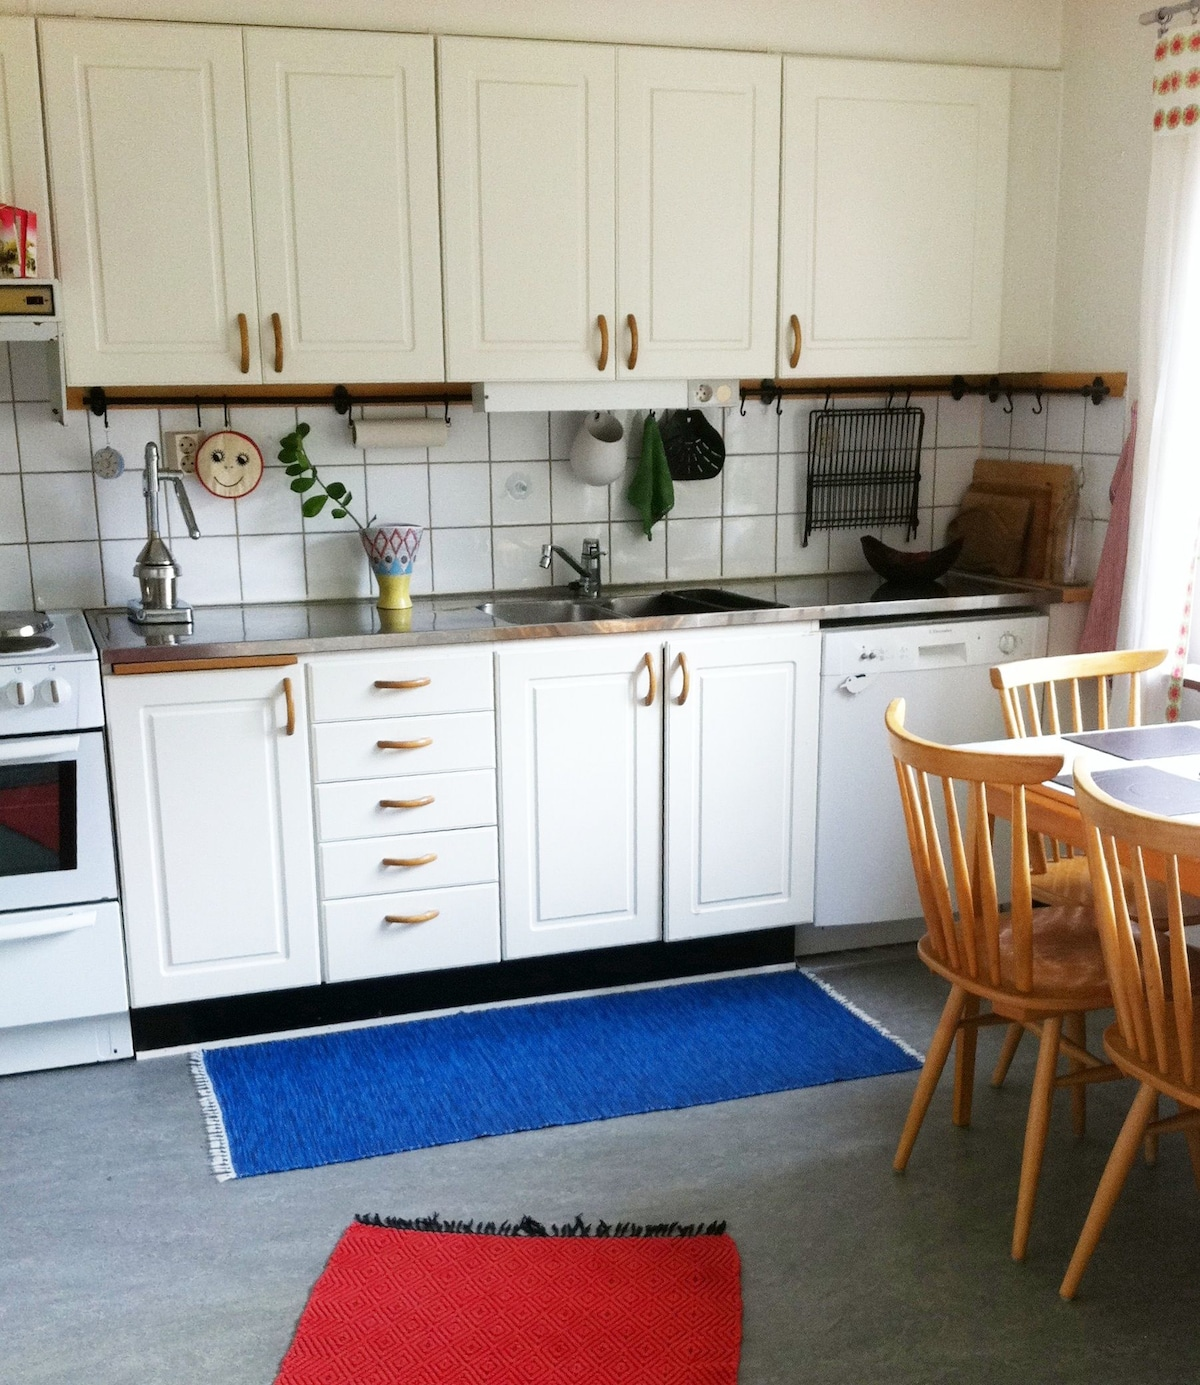 There is a large and spacious, fully equipped kitchen with all appliances including a microwave oven and full size dishwasher.